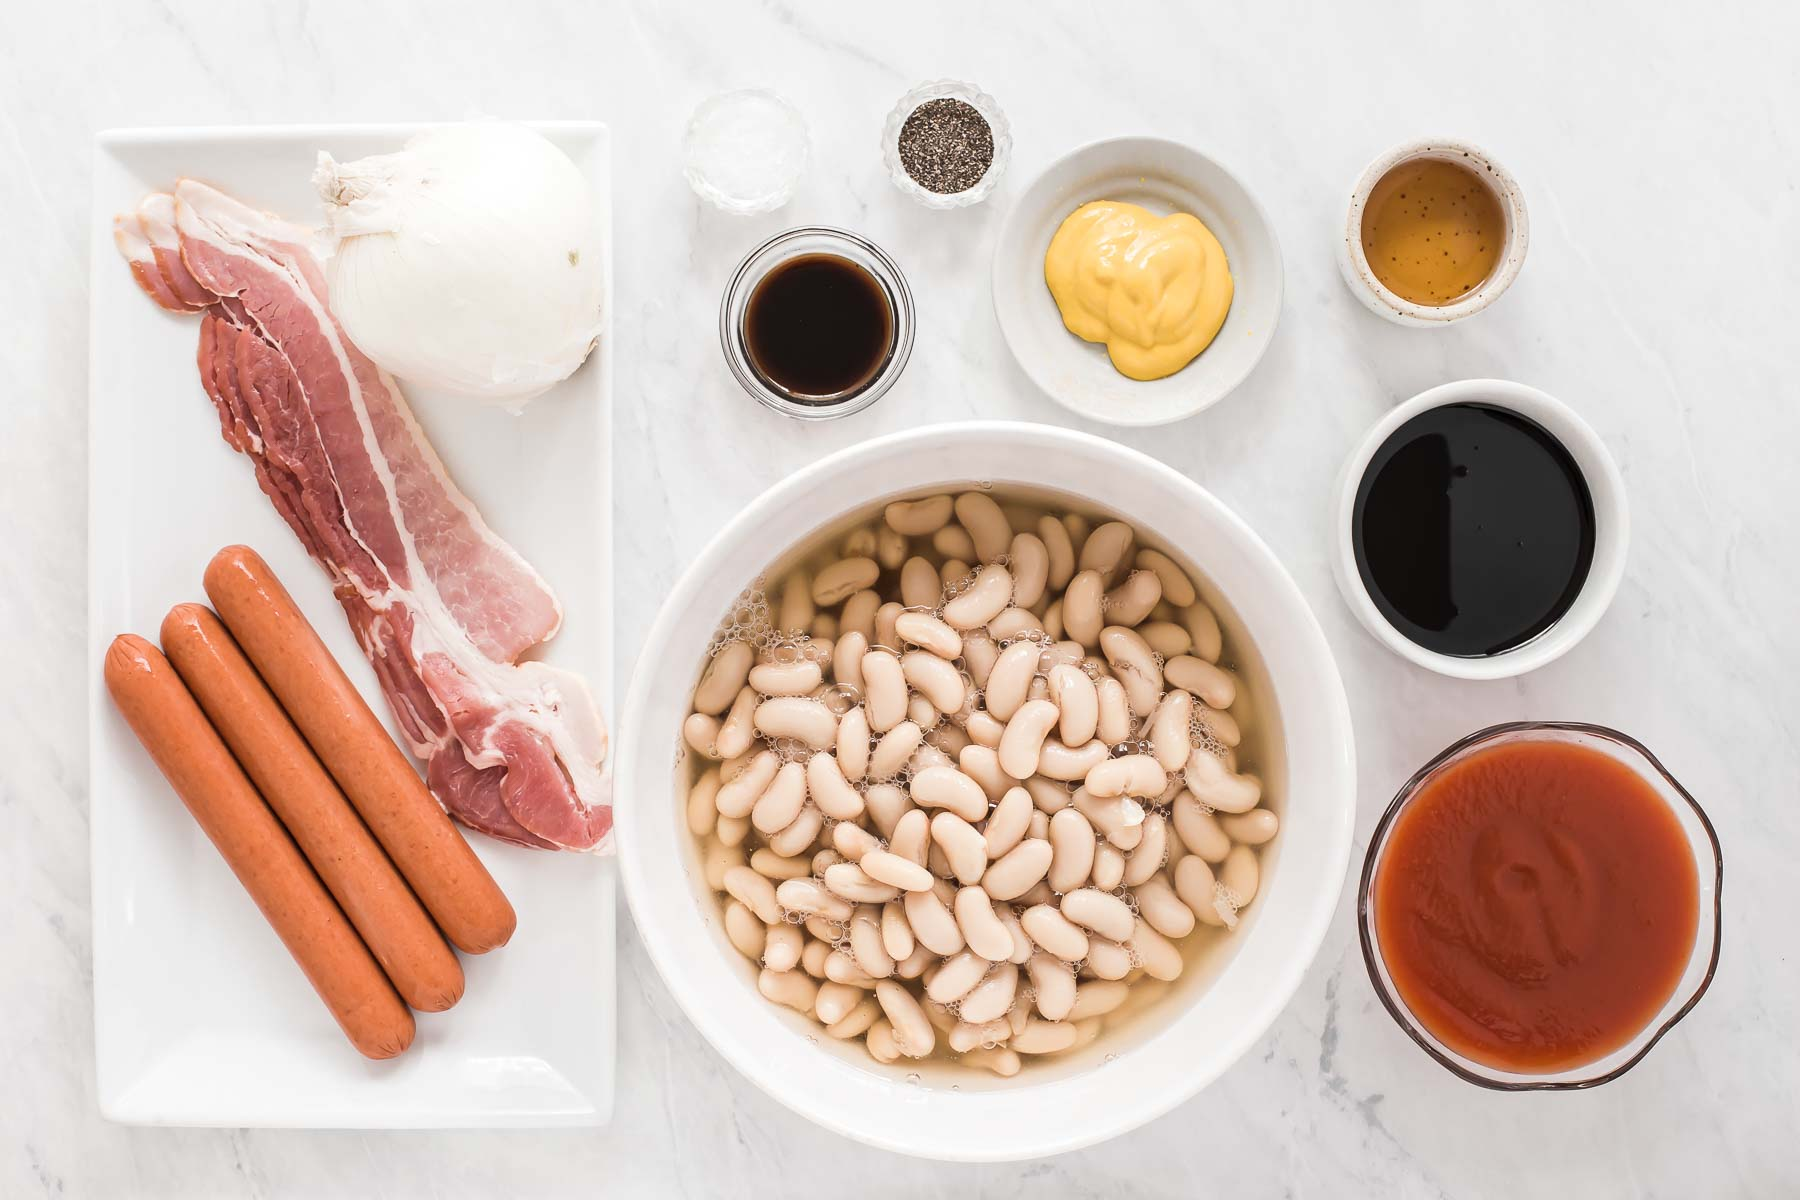 Ingredients for pork and beans on white table.